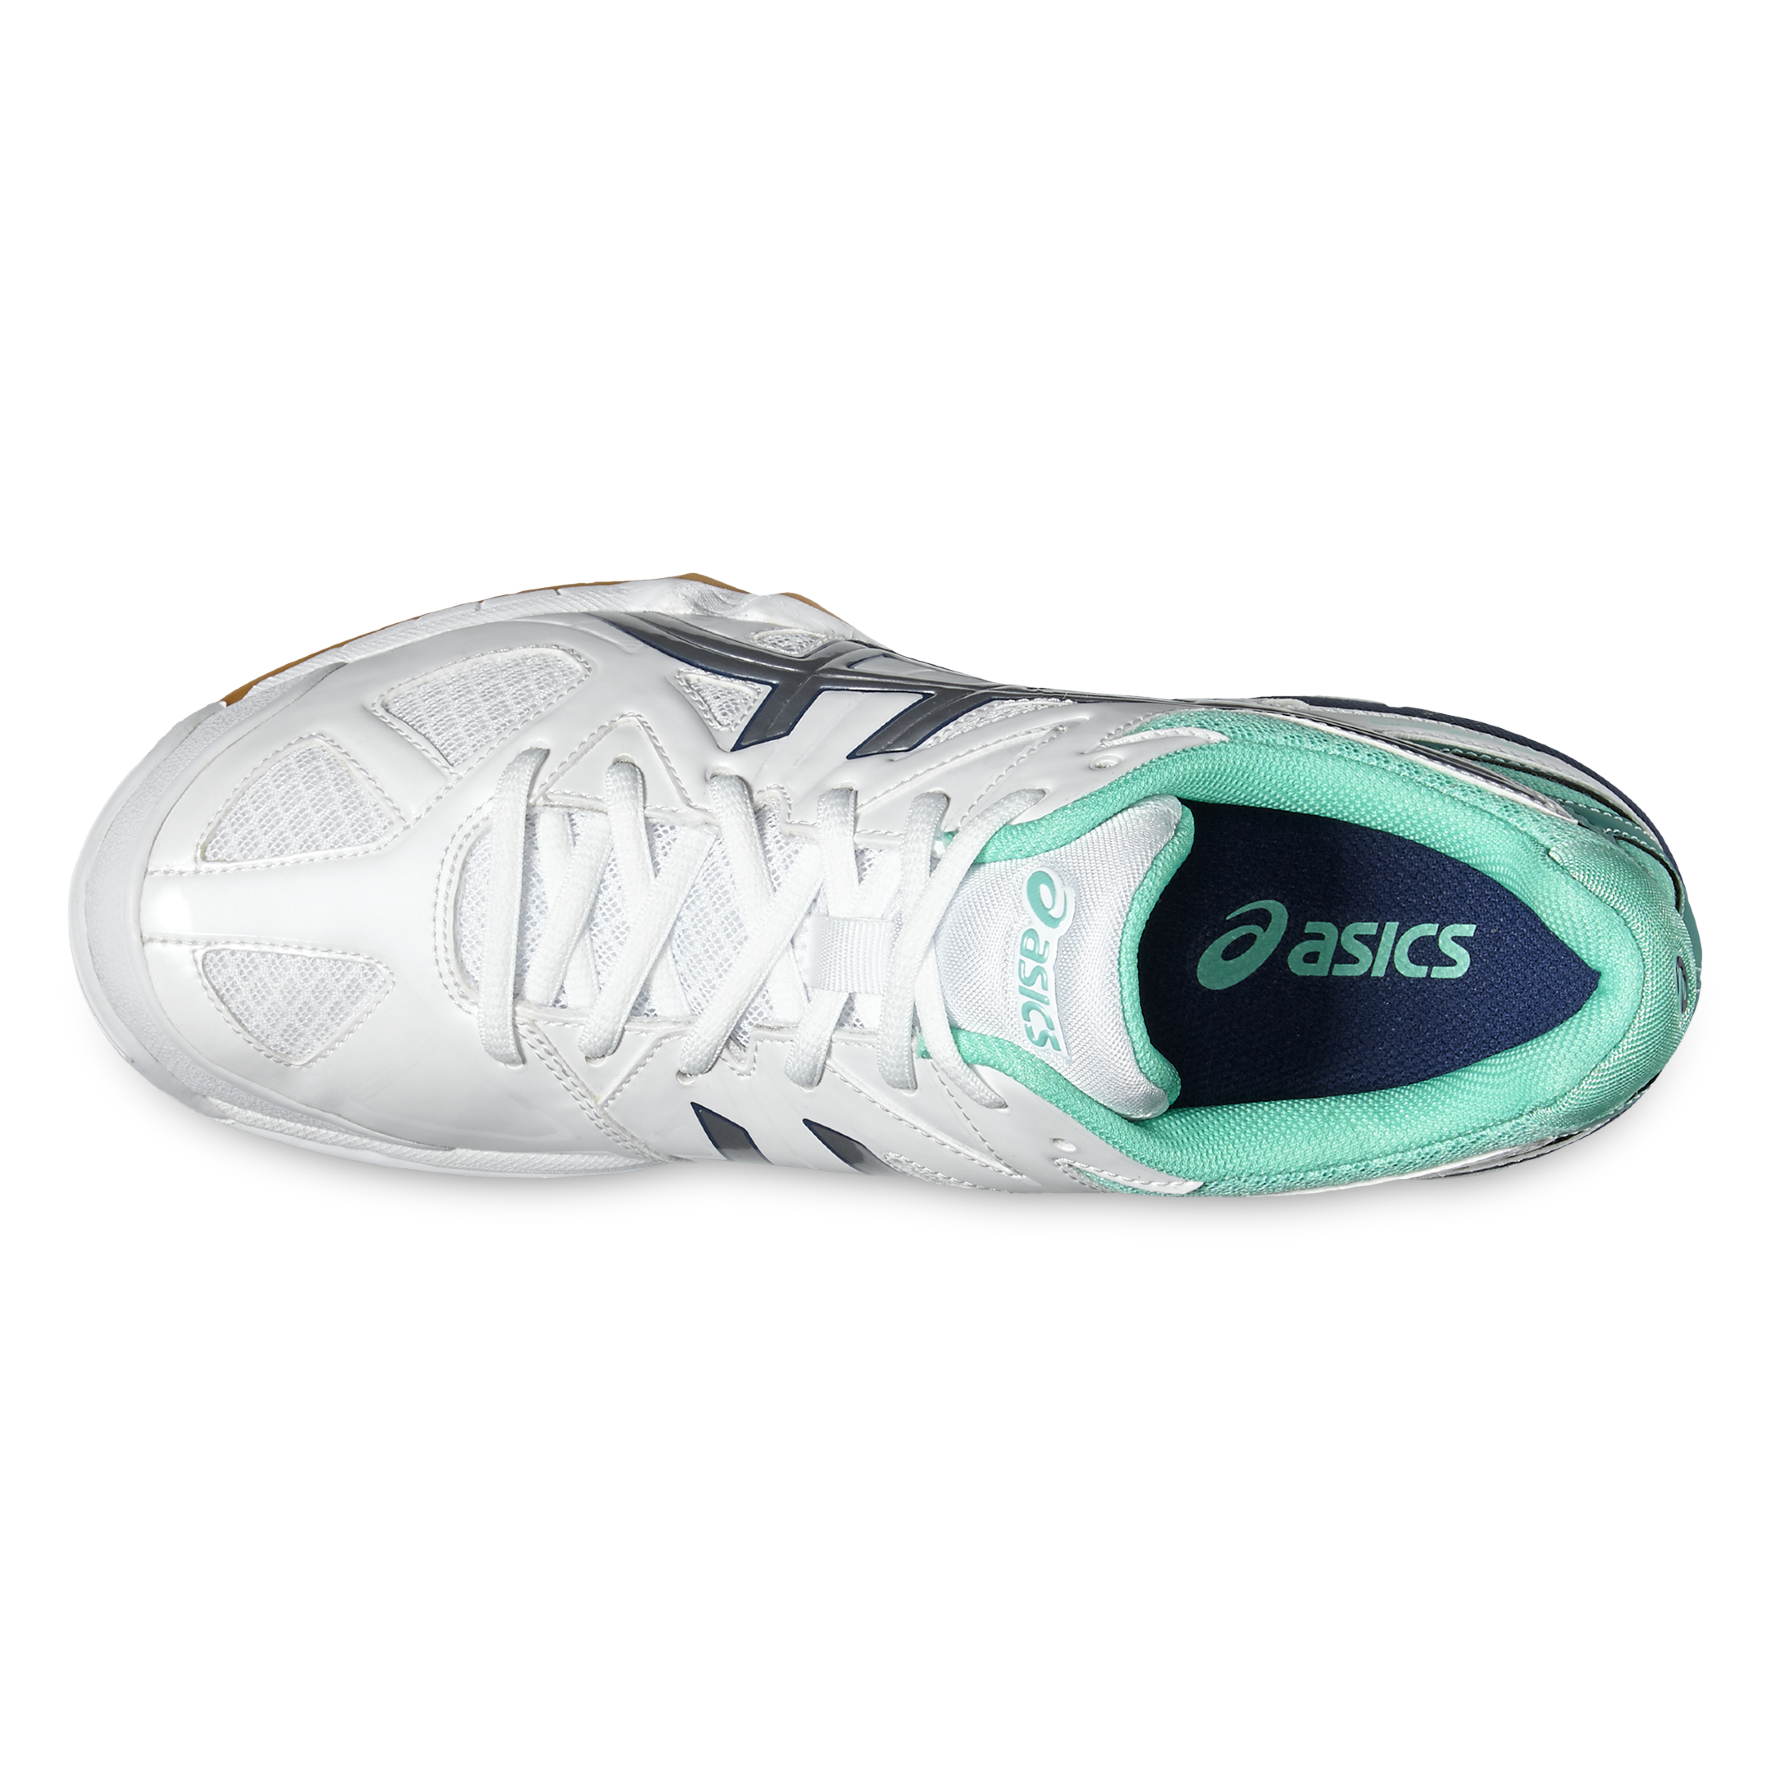 ASICS GEL-Tactic Lady Upper